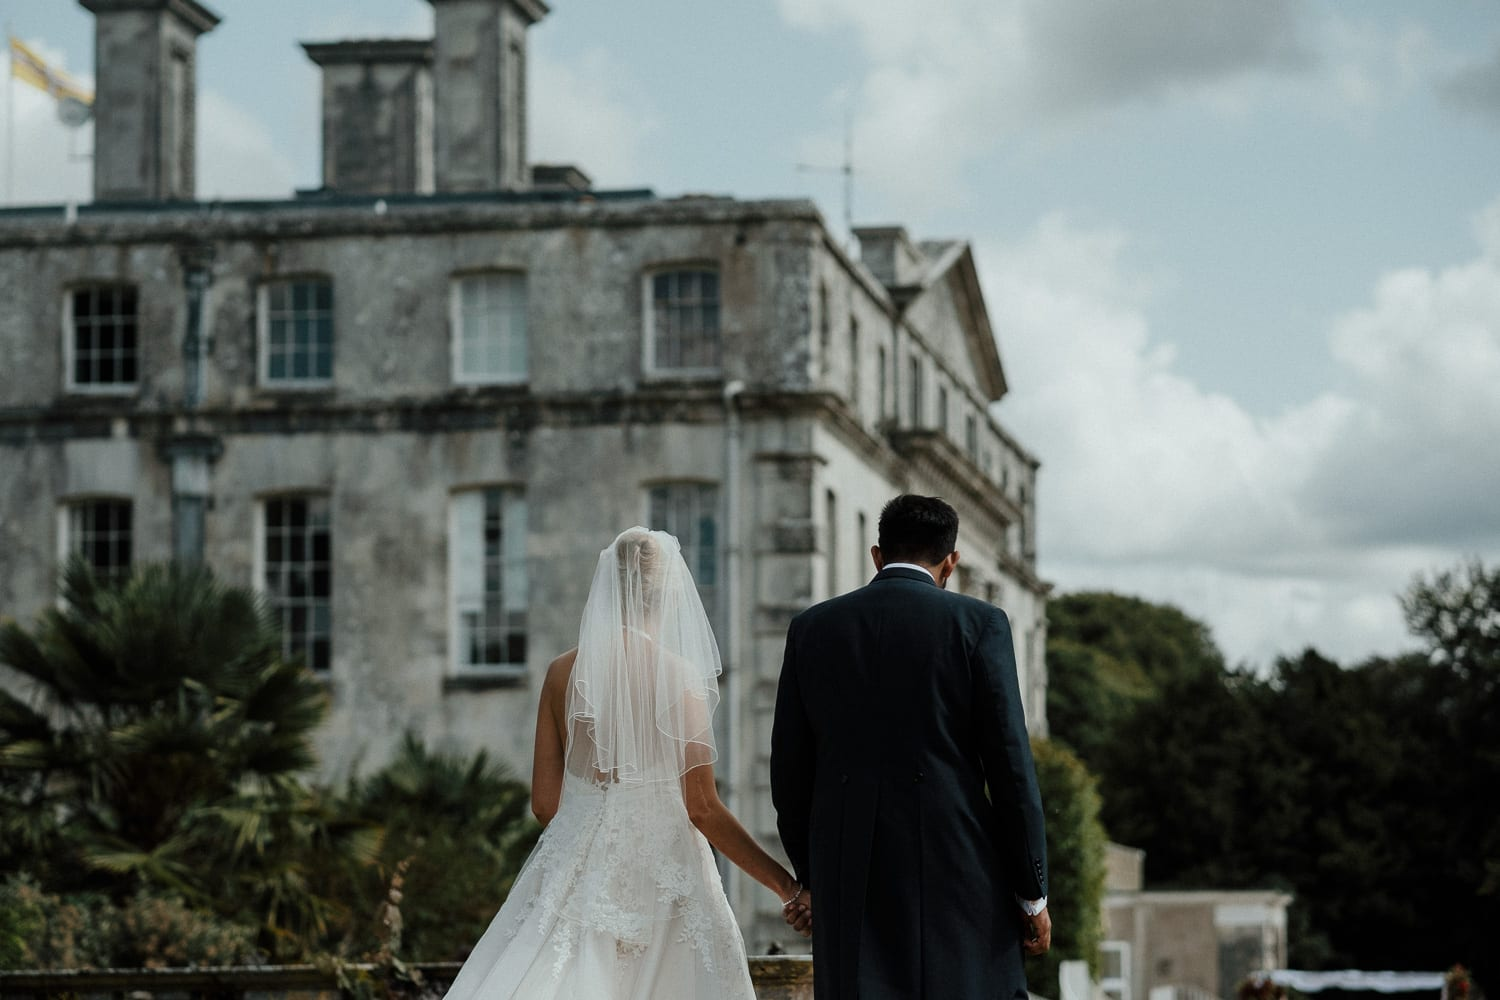 Bride and groom hand in hand walking towards the Main House along the terrace